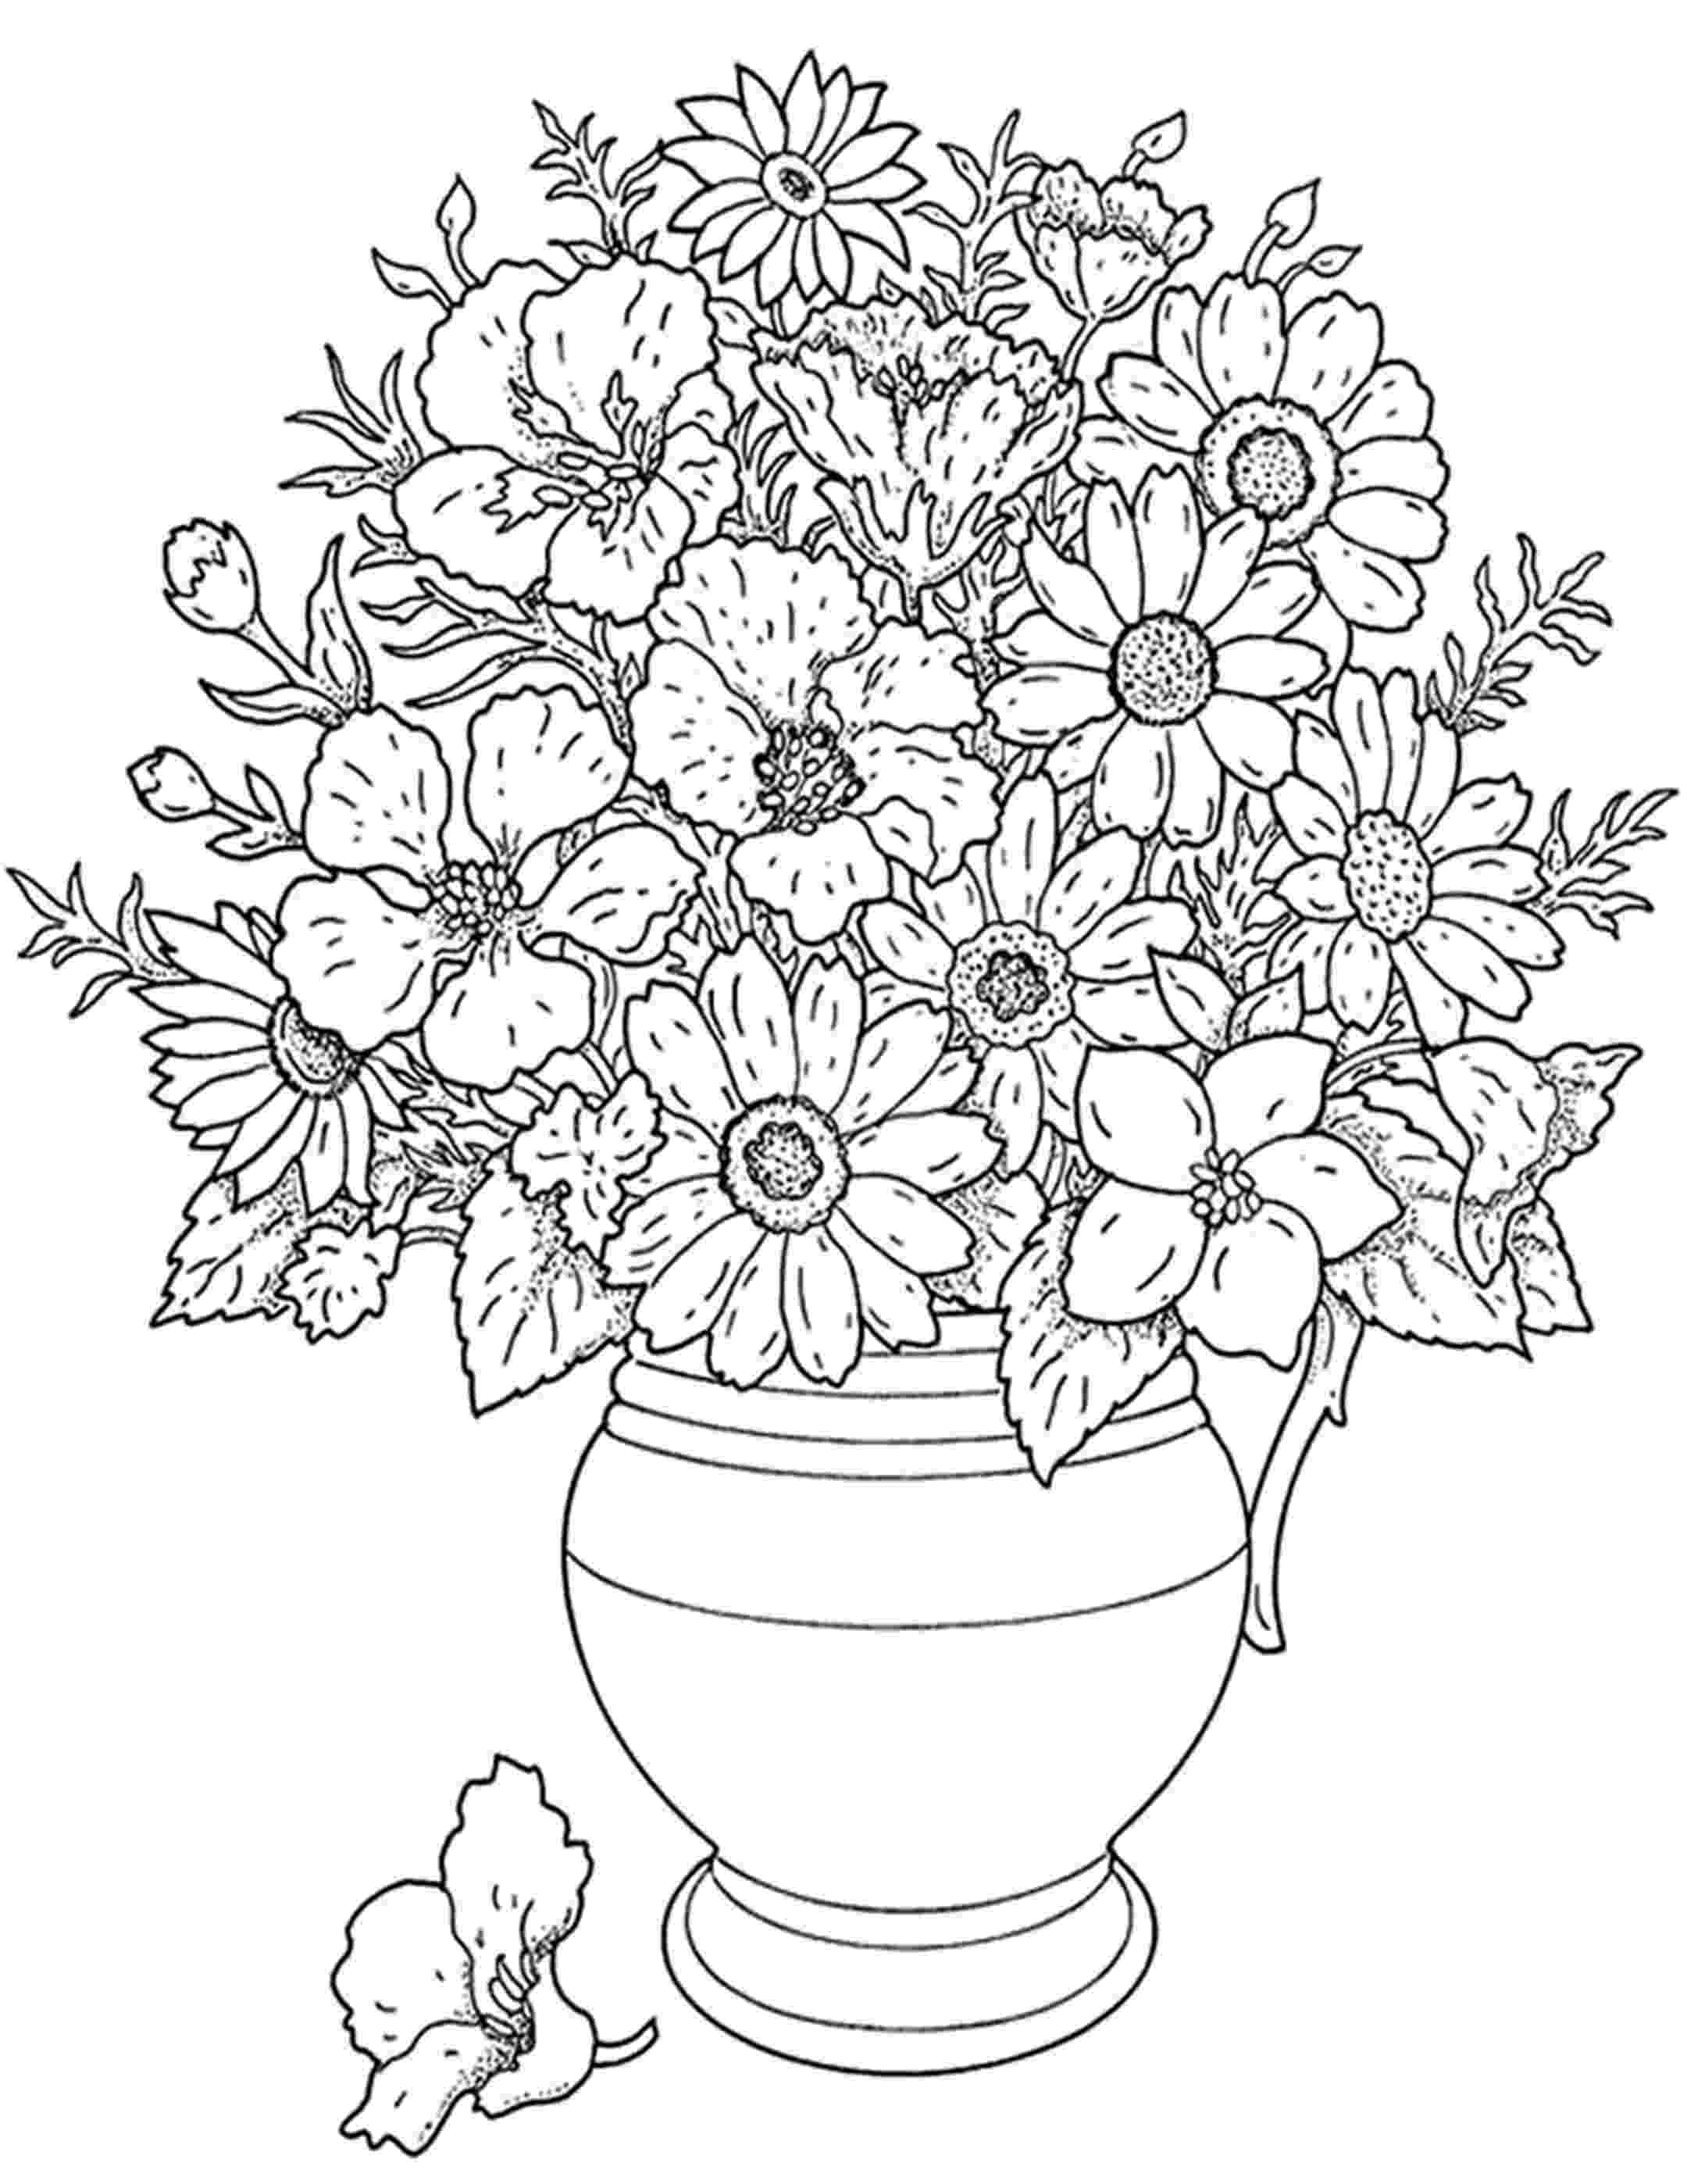 flower images to color free printable flower coloring pages for kids best to color images flower